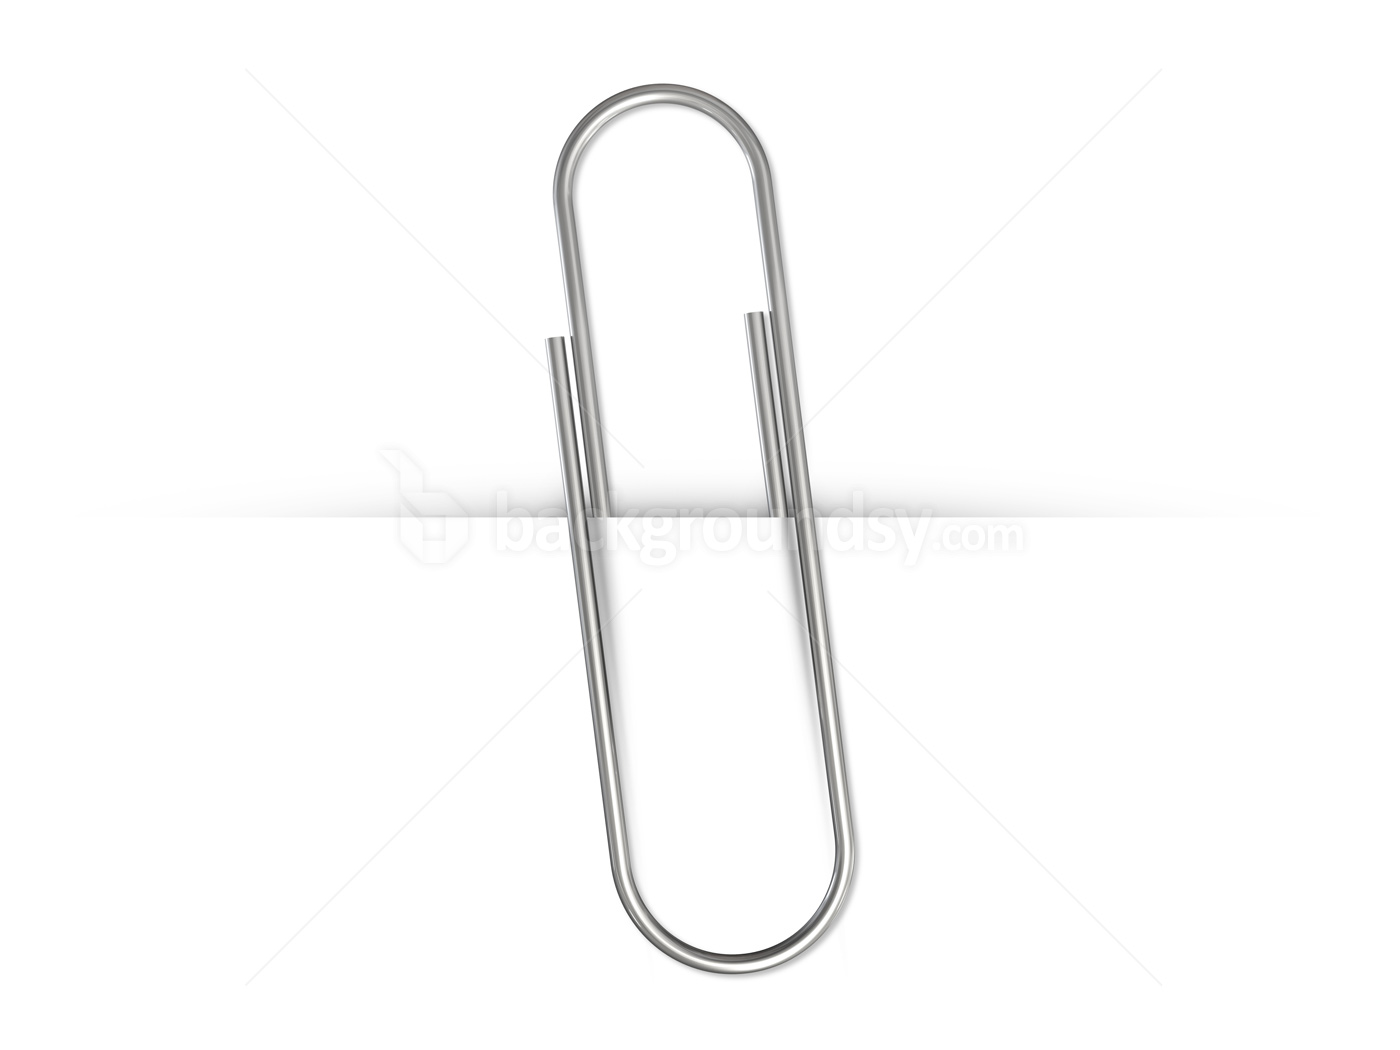 Paperclip Png 101 images in Collection Page 1 1400x1050